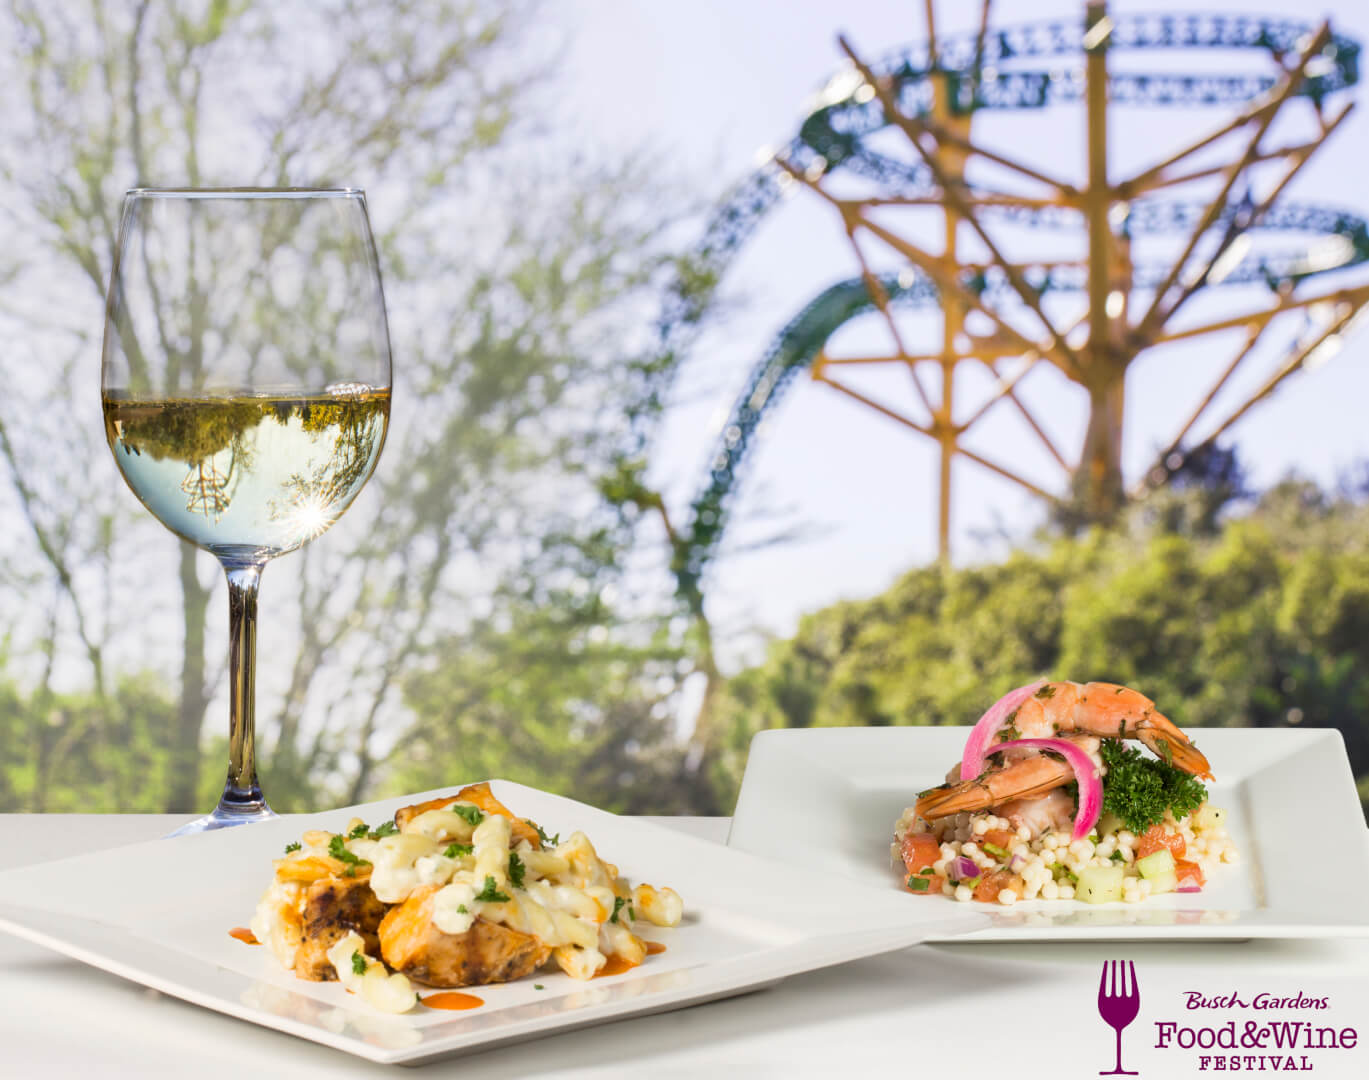 Busch Gardens Tampa Whets Our Appetite With Their 2016 Food Wine Festival Menu Inside The Magic